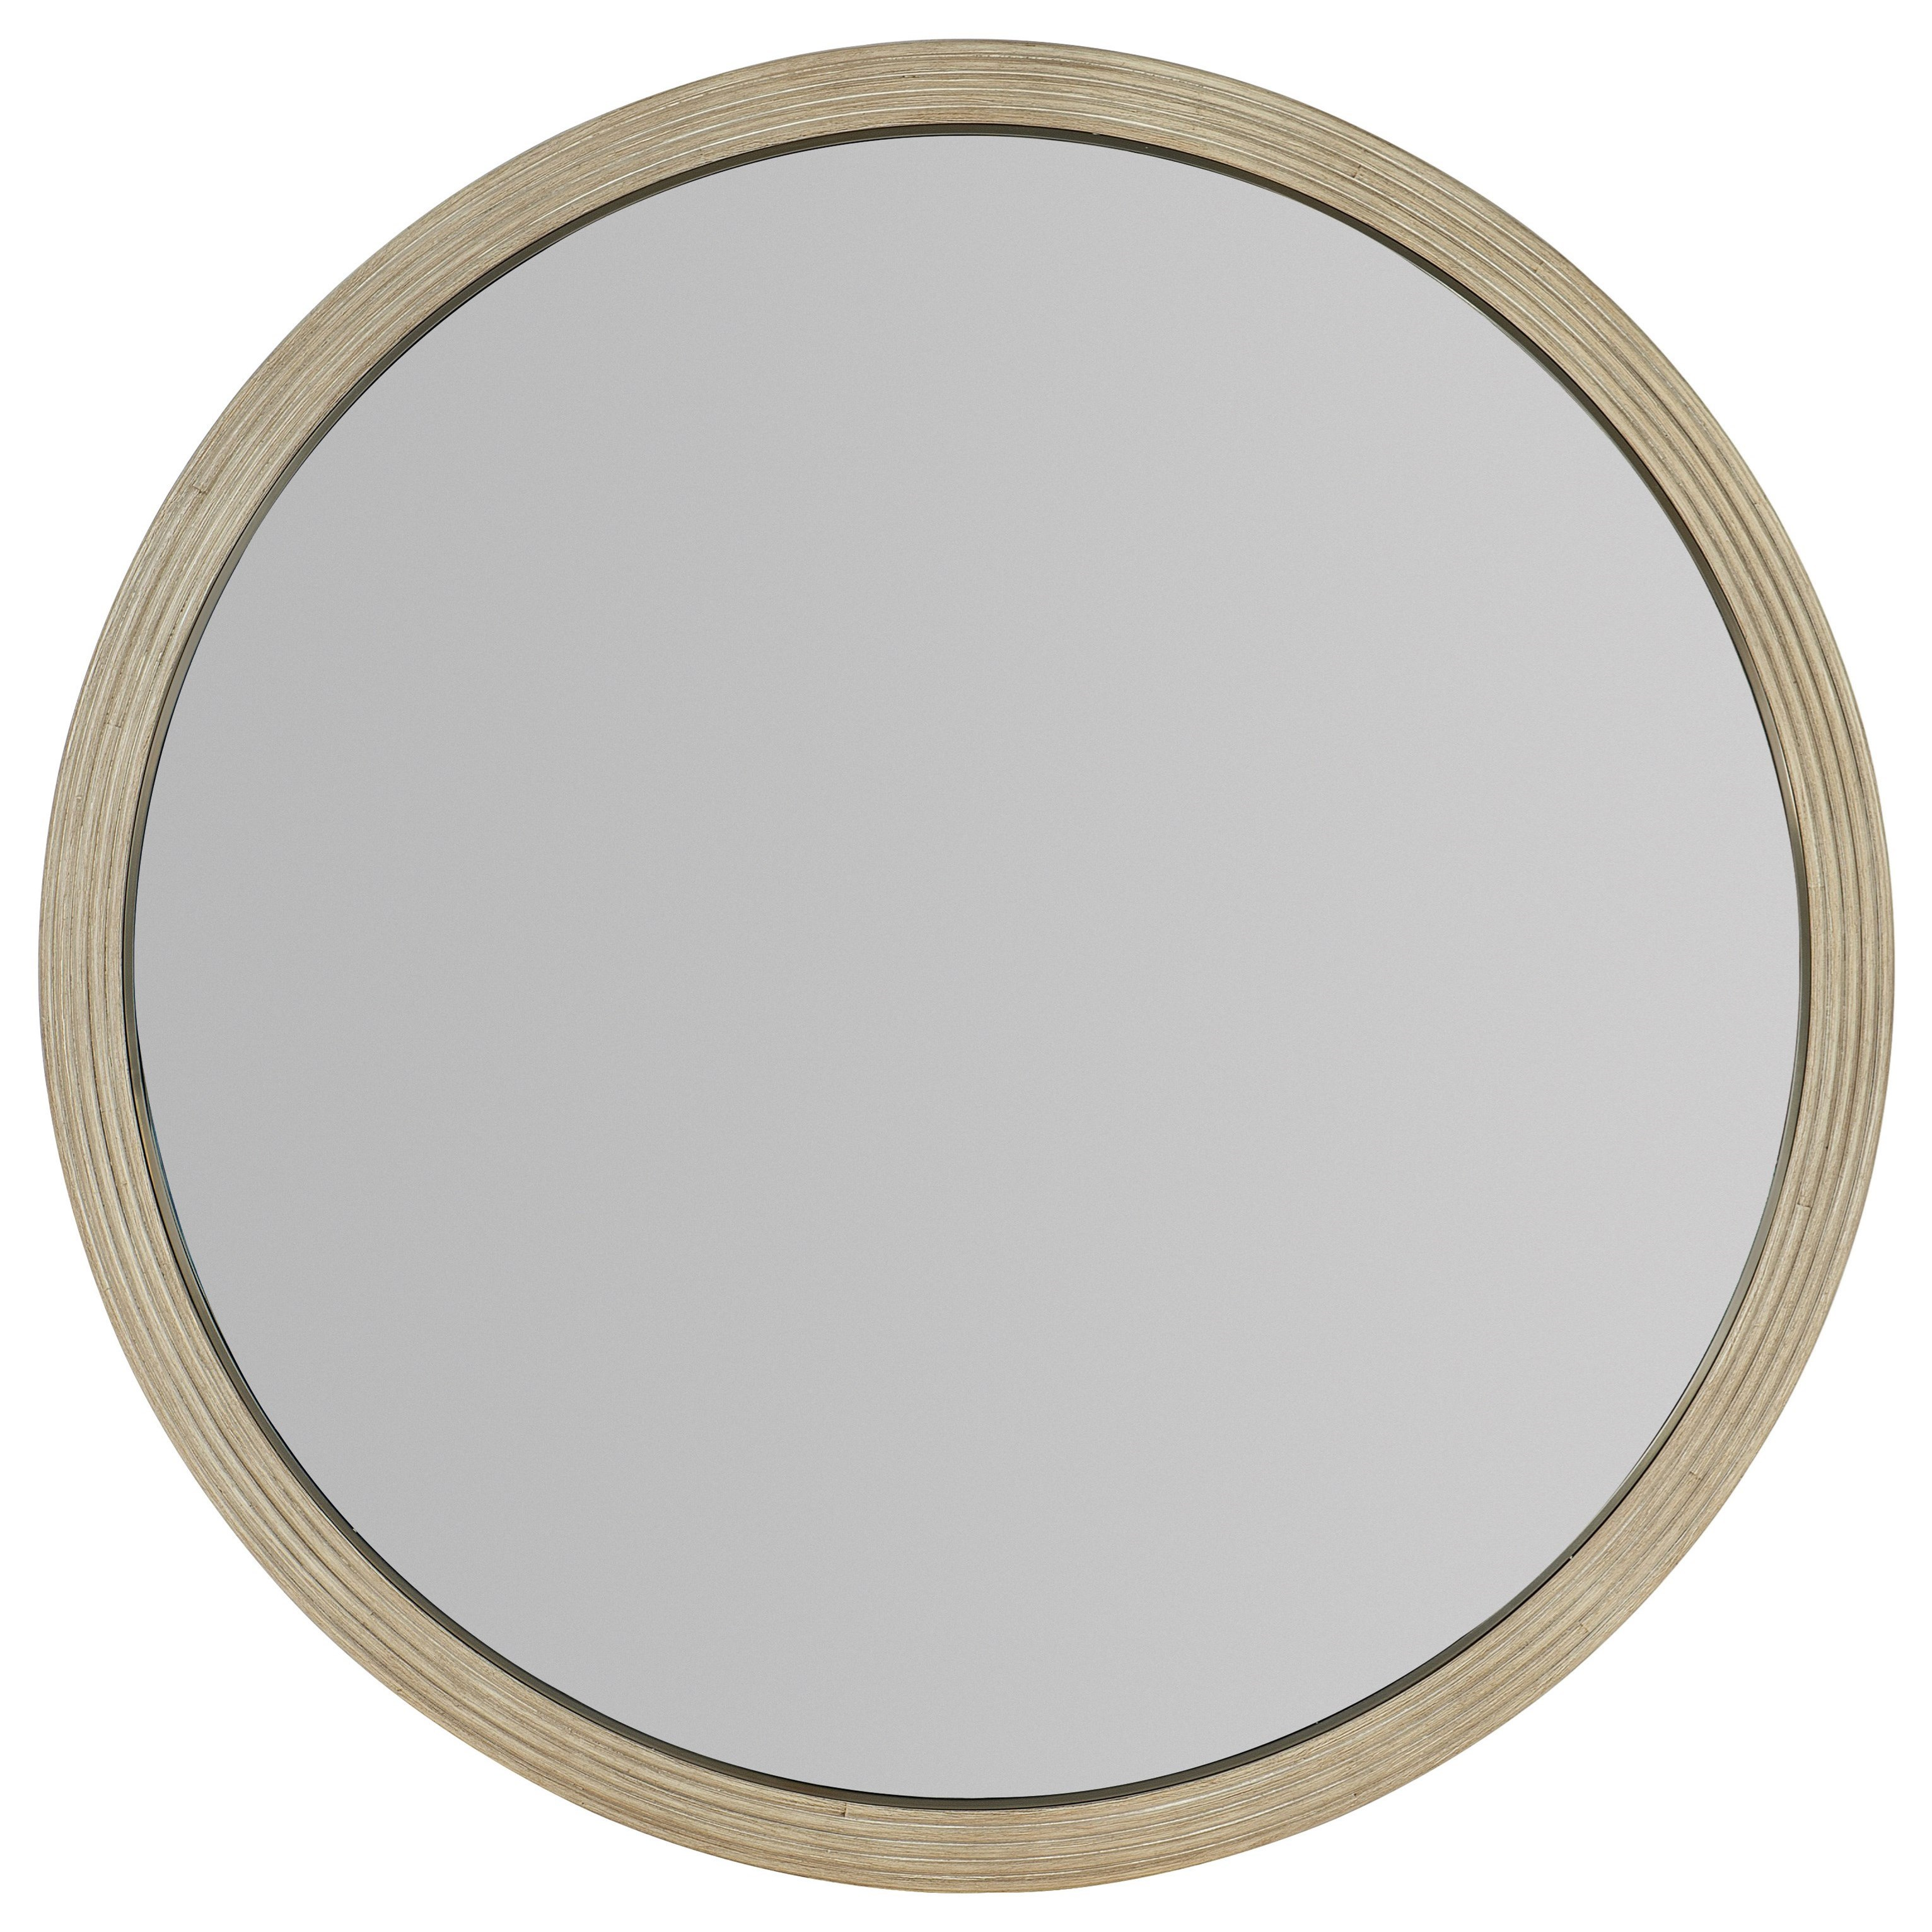 Cascade Mirror by Hooker Furniture at Miller Waldrop Furniture and Decor